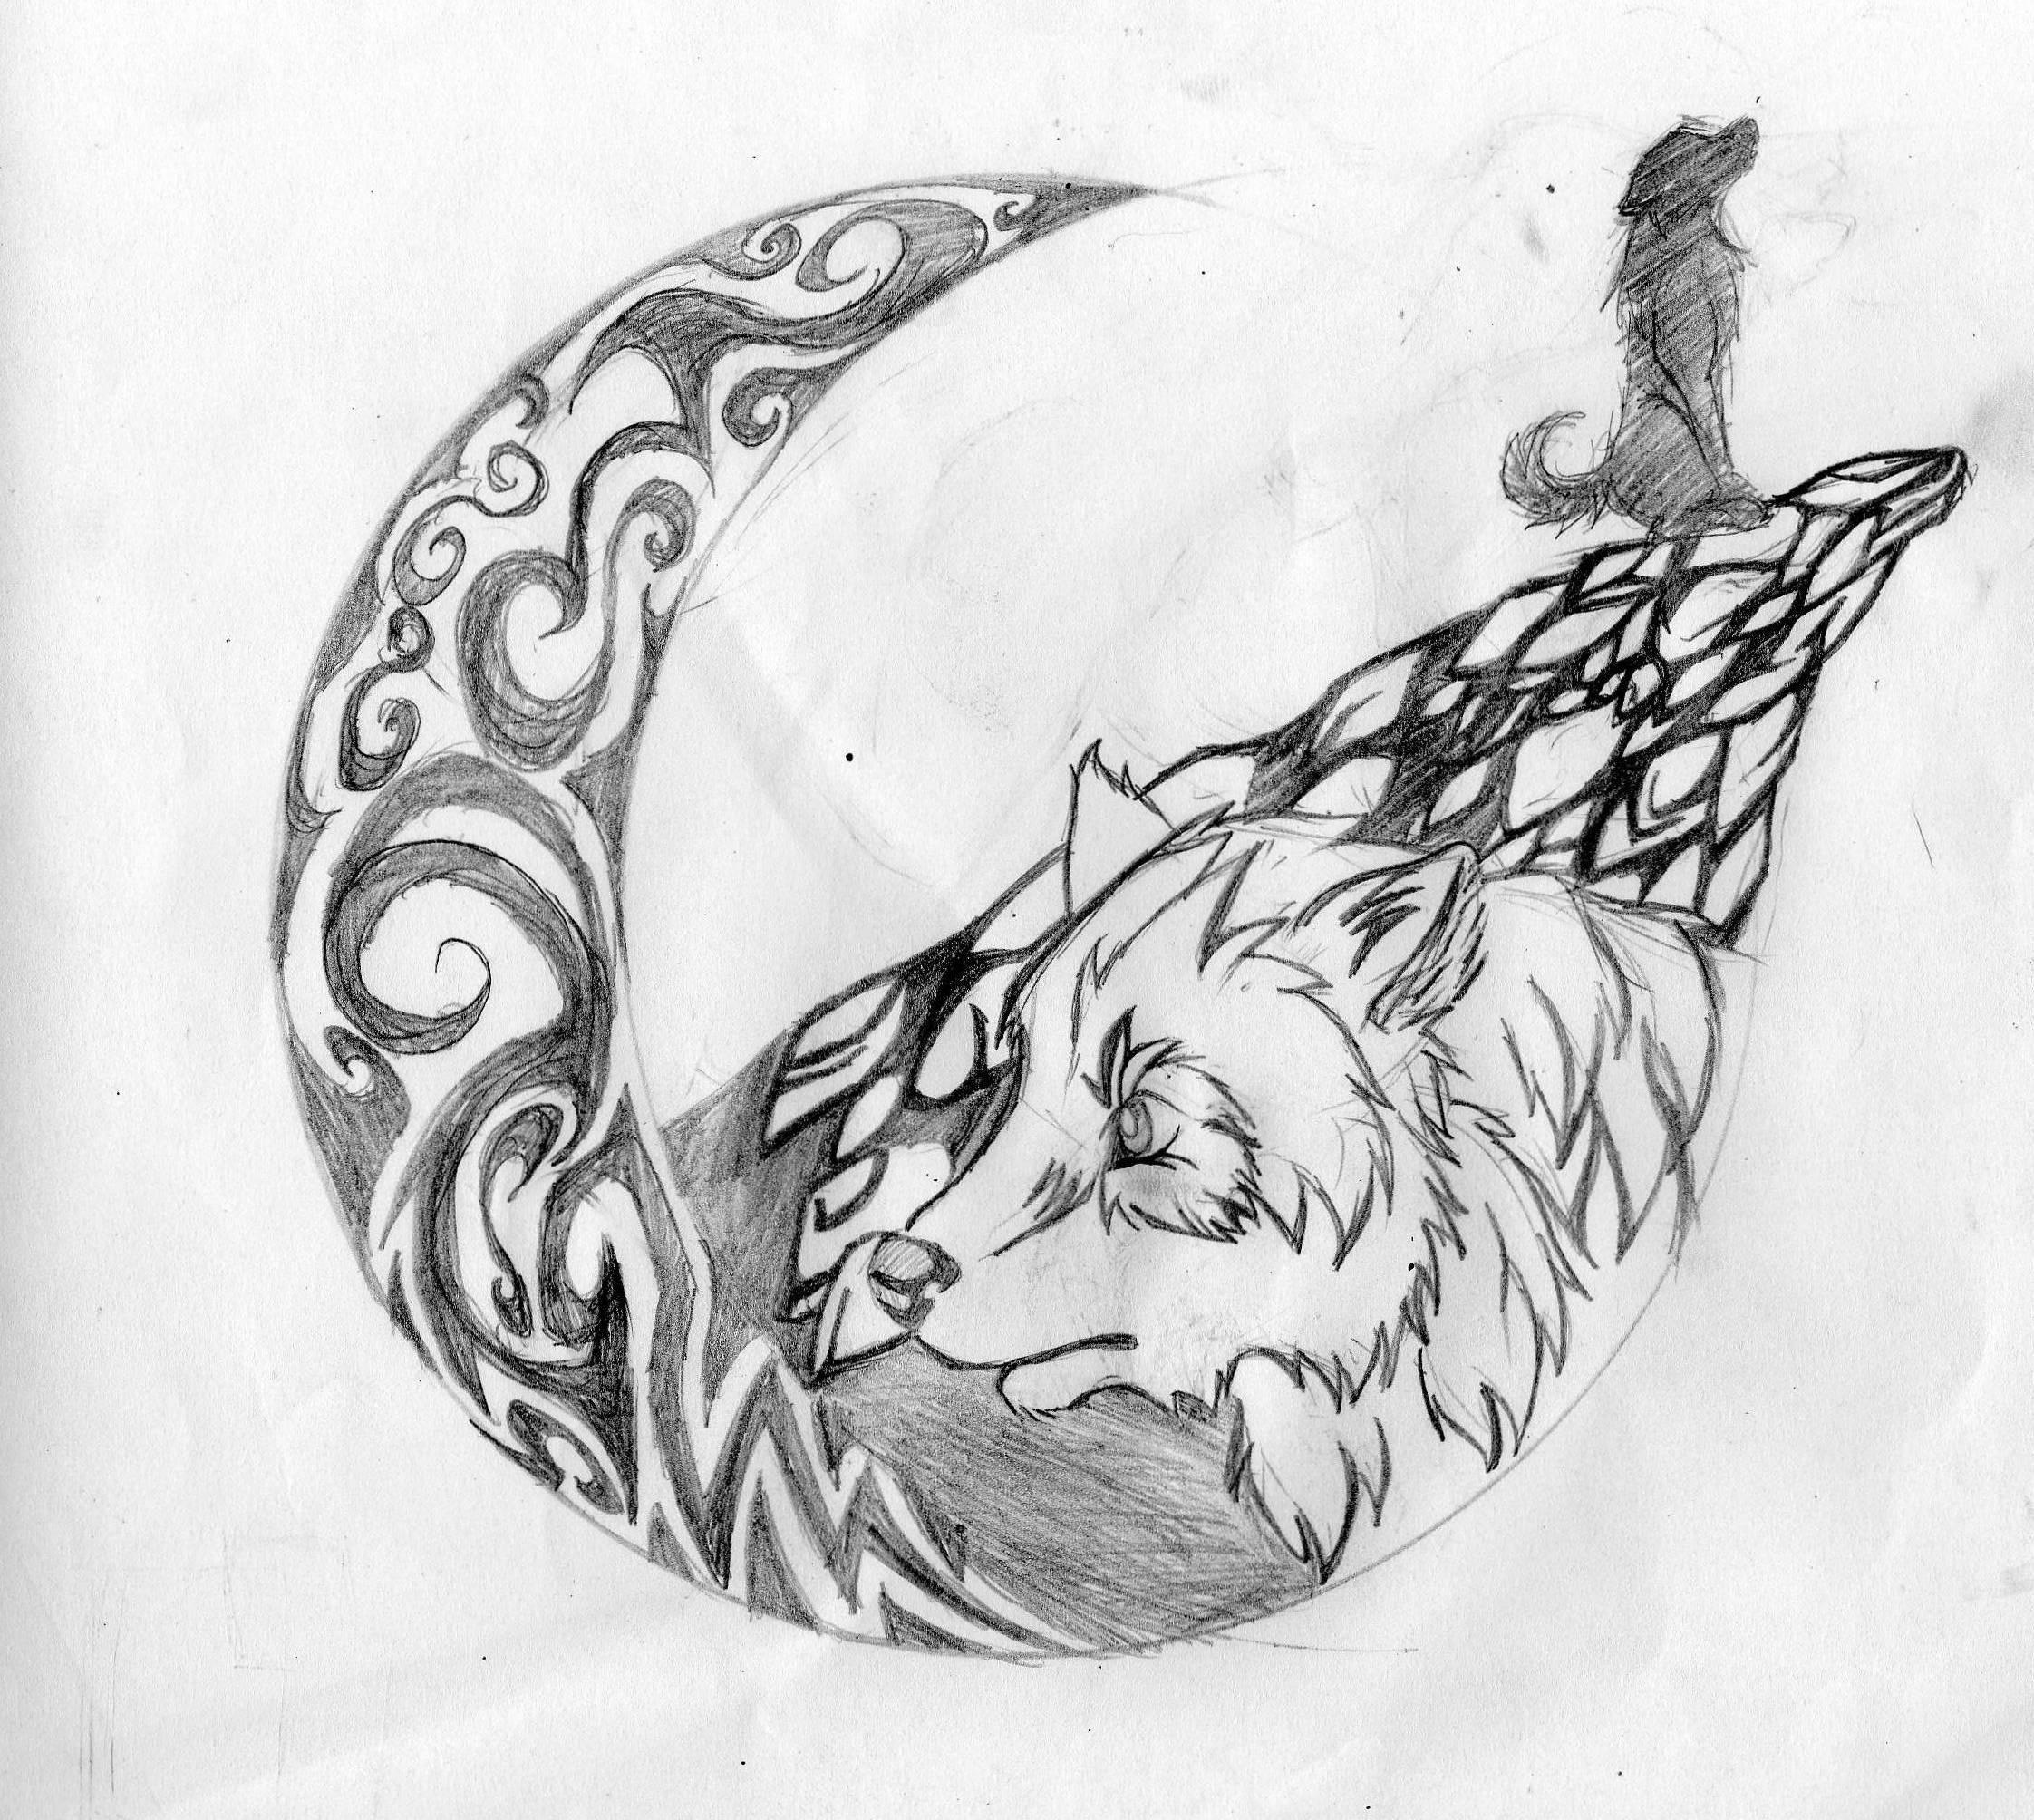 Wolf howling at the moon drawing in pencil